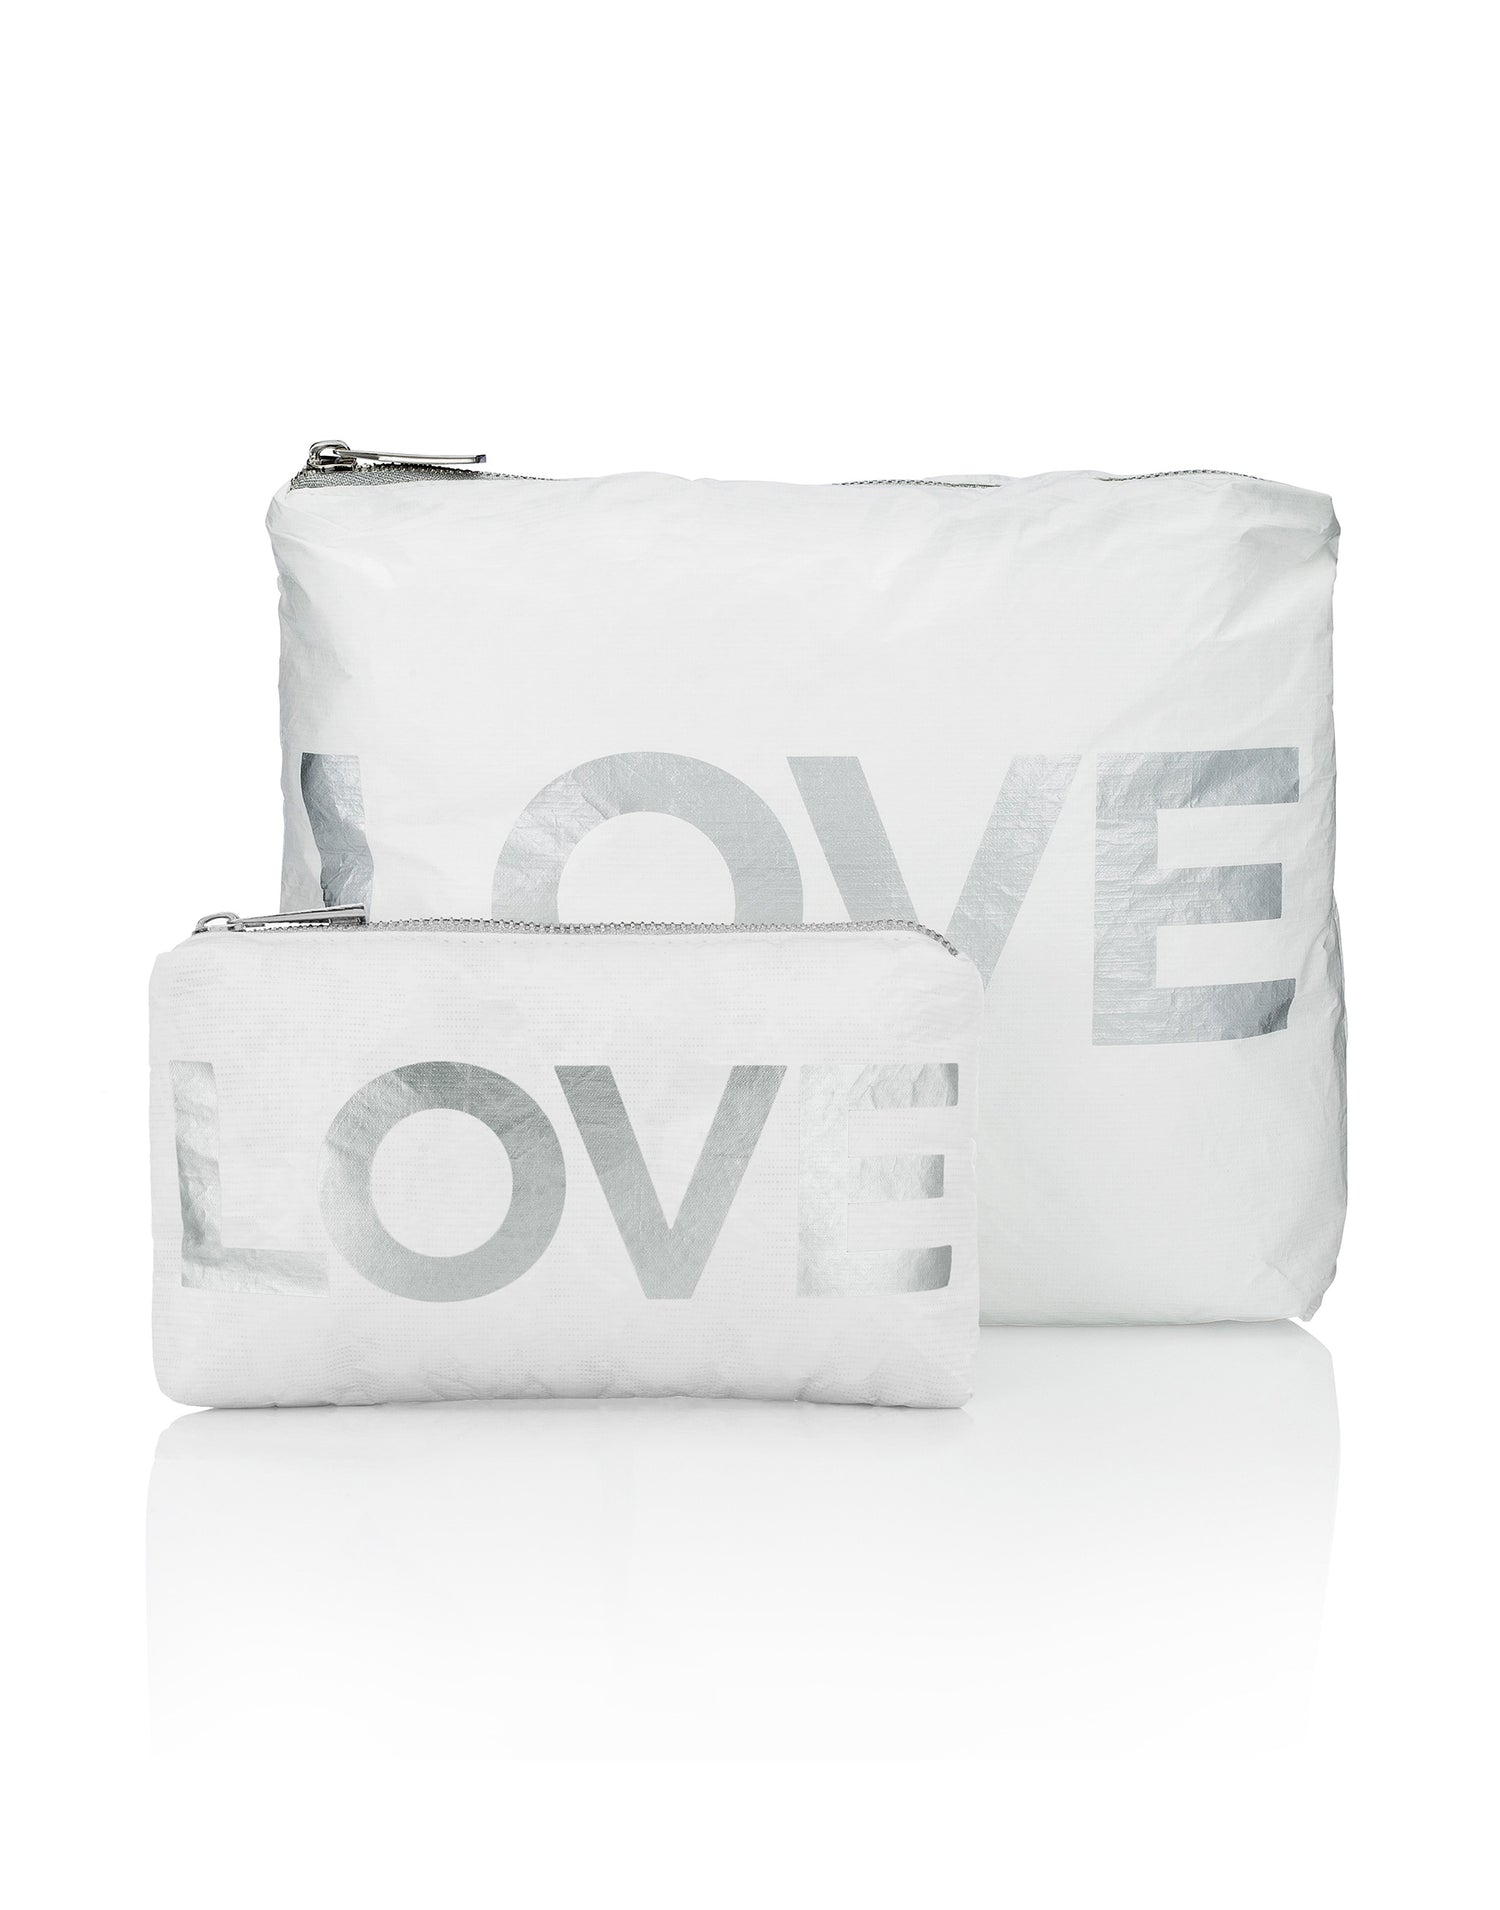 Hi Love's Two-Piece Love Travel Case Set in White - Product View